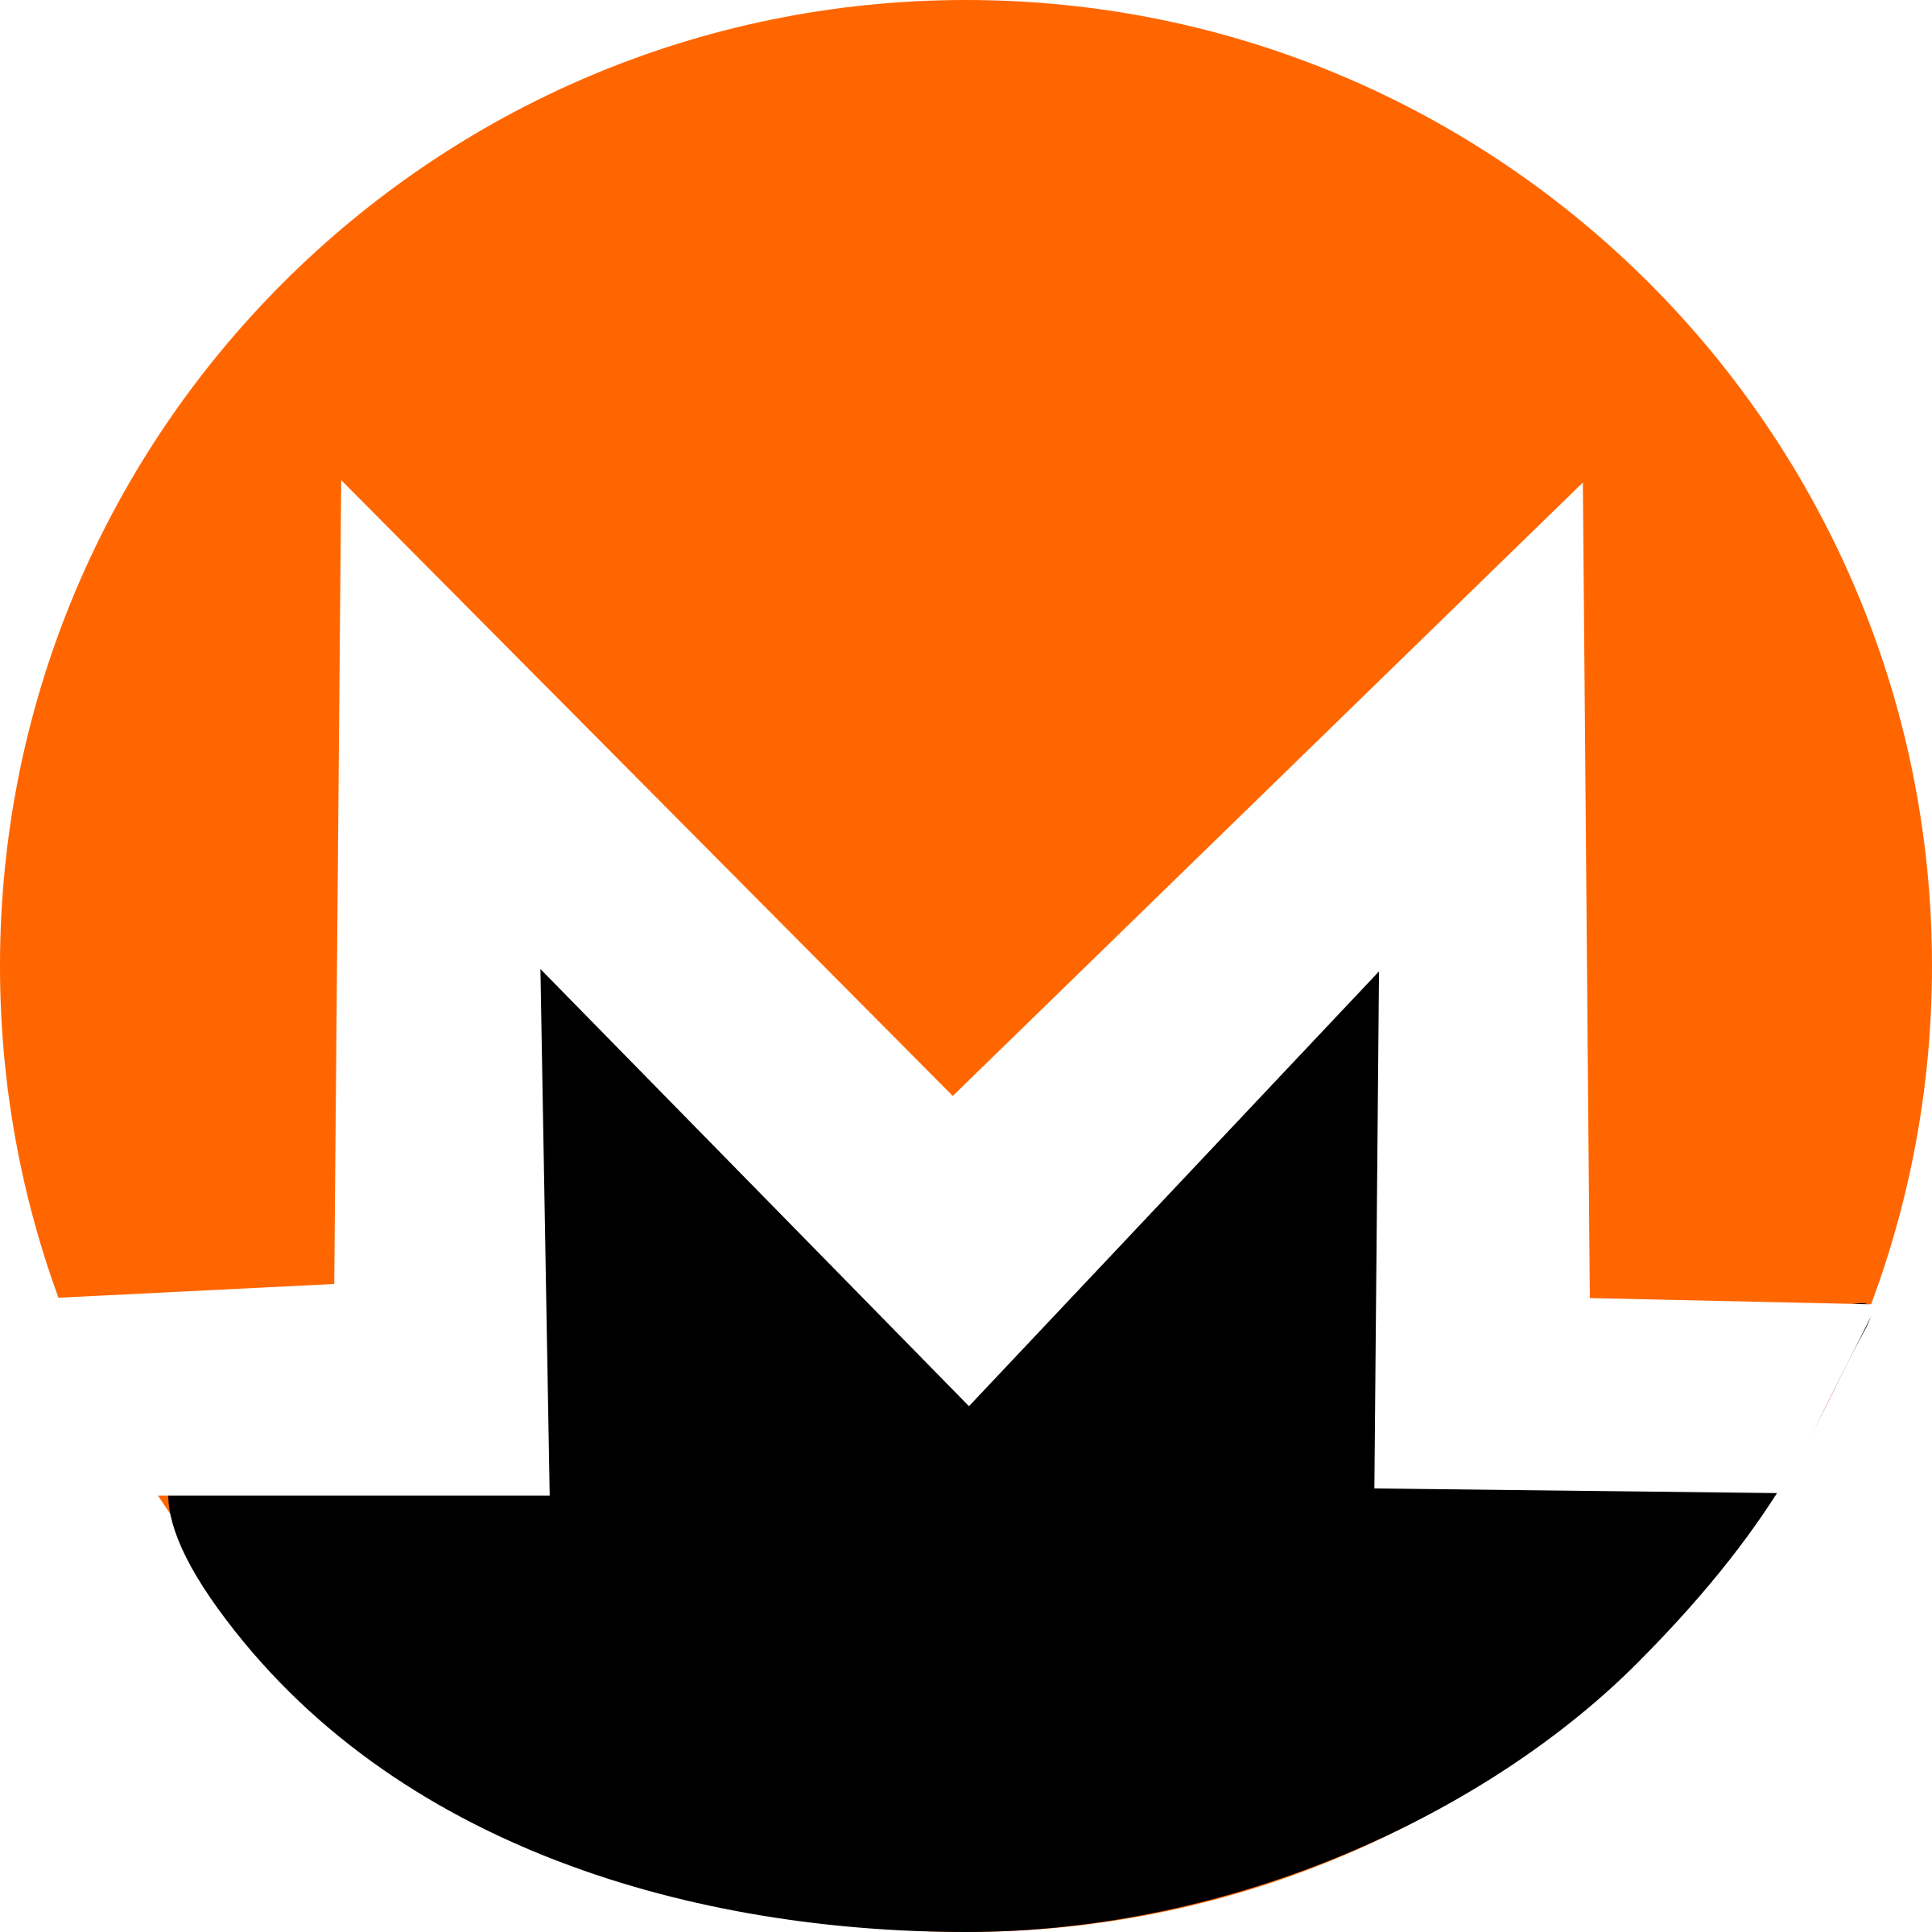 XMR Monero Cryptocurrency in a Nutshell